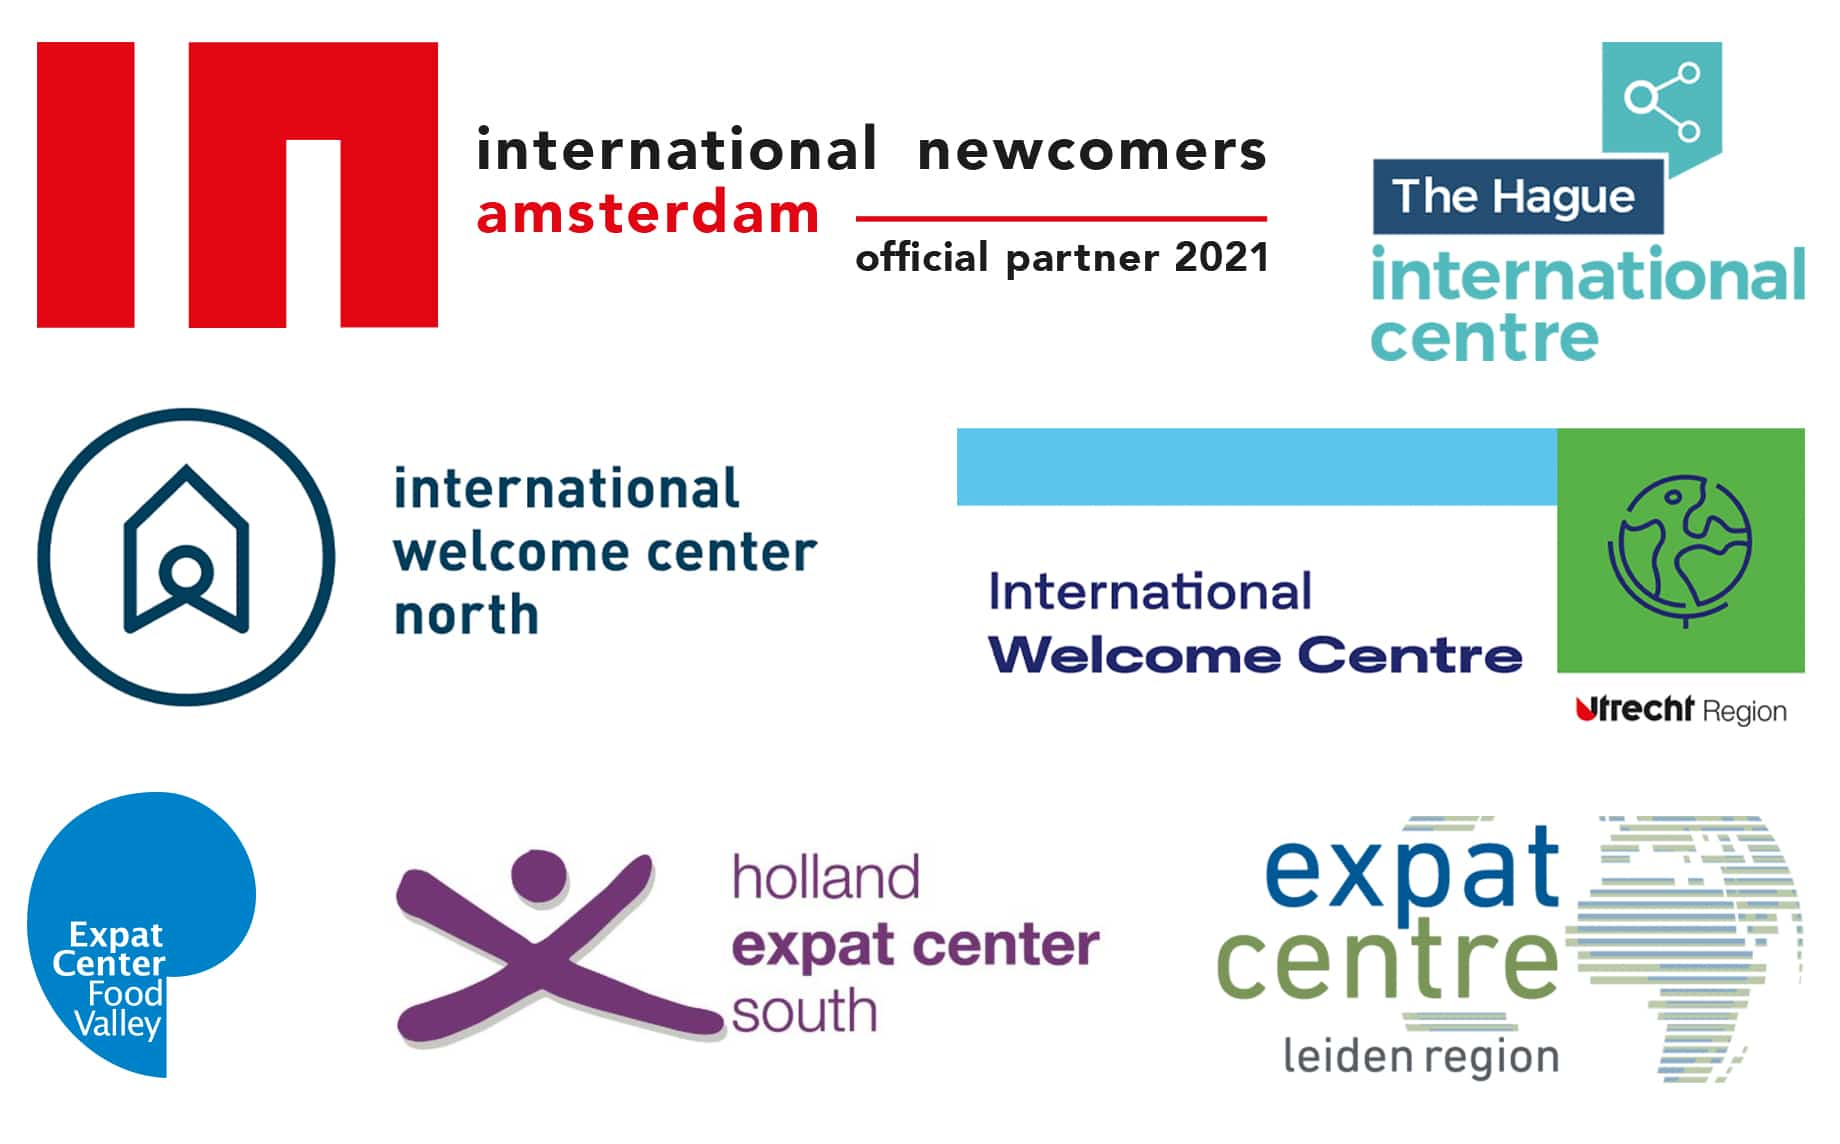 Our expat partnerships